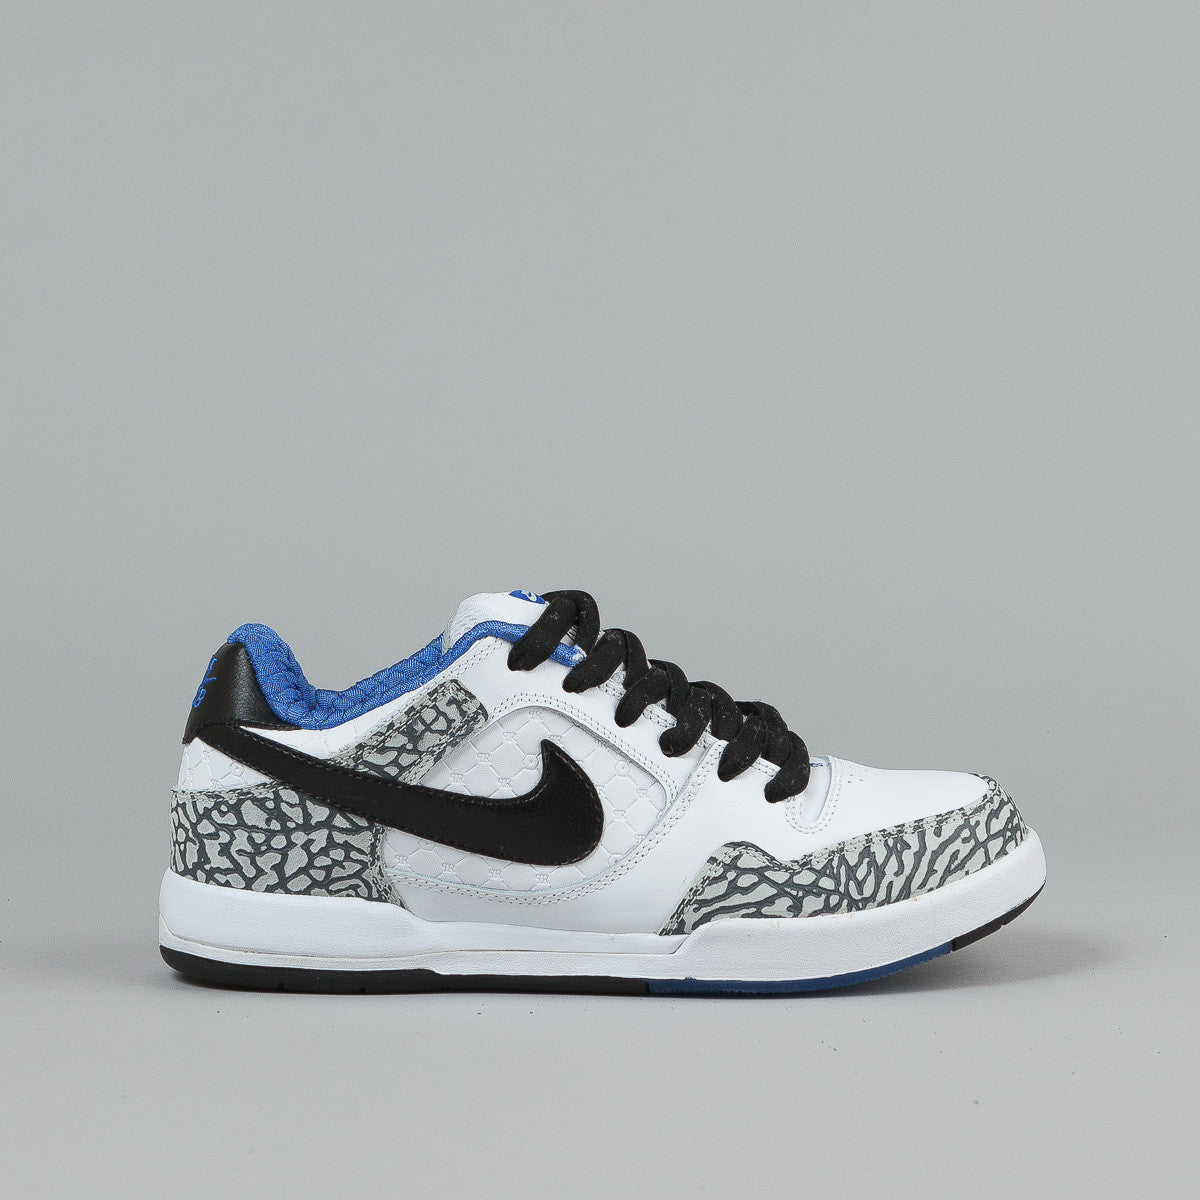 Nike SB Paul Rodriguez 2 Premium Shoes